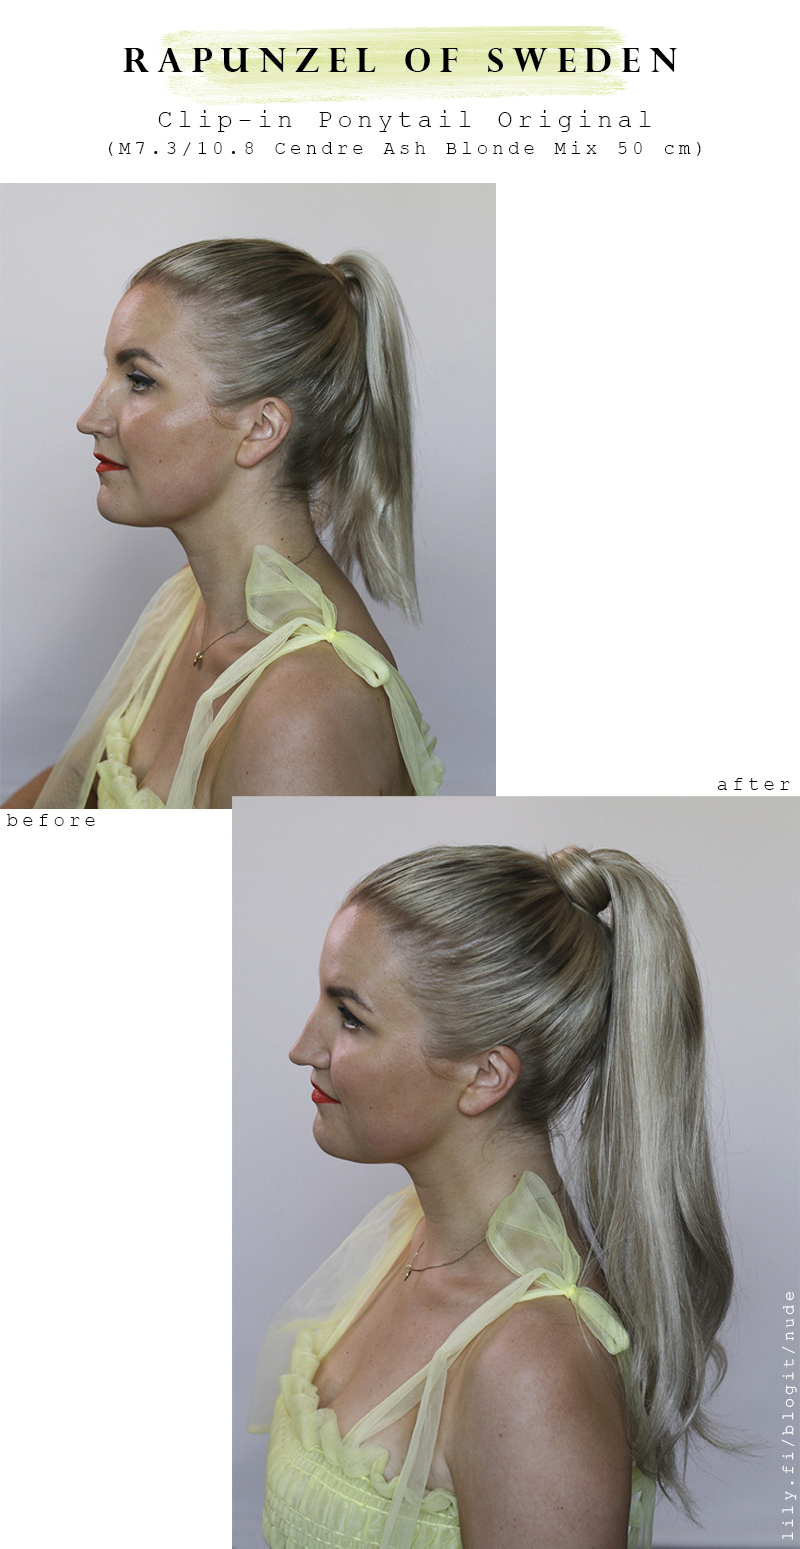 clip-in-ponytail